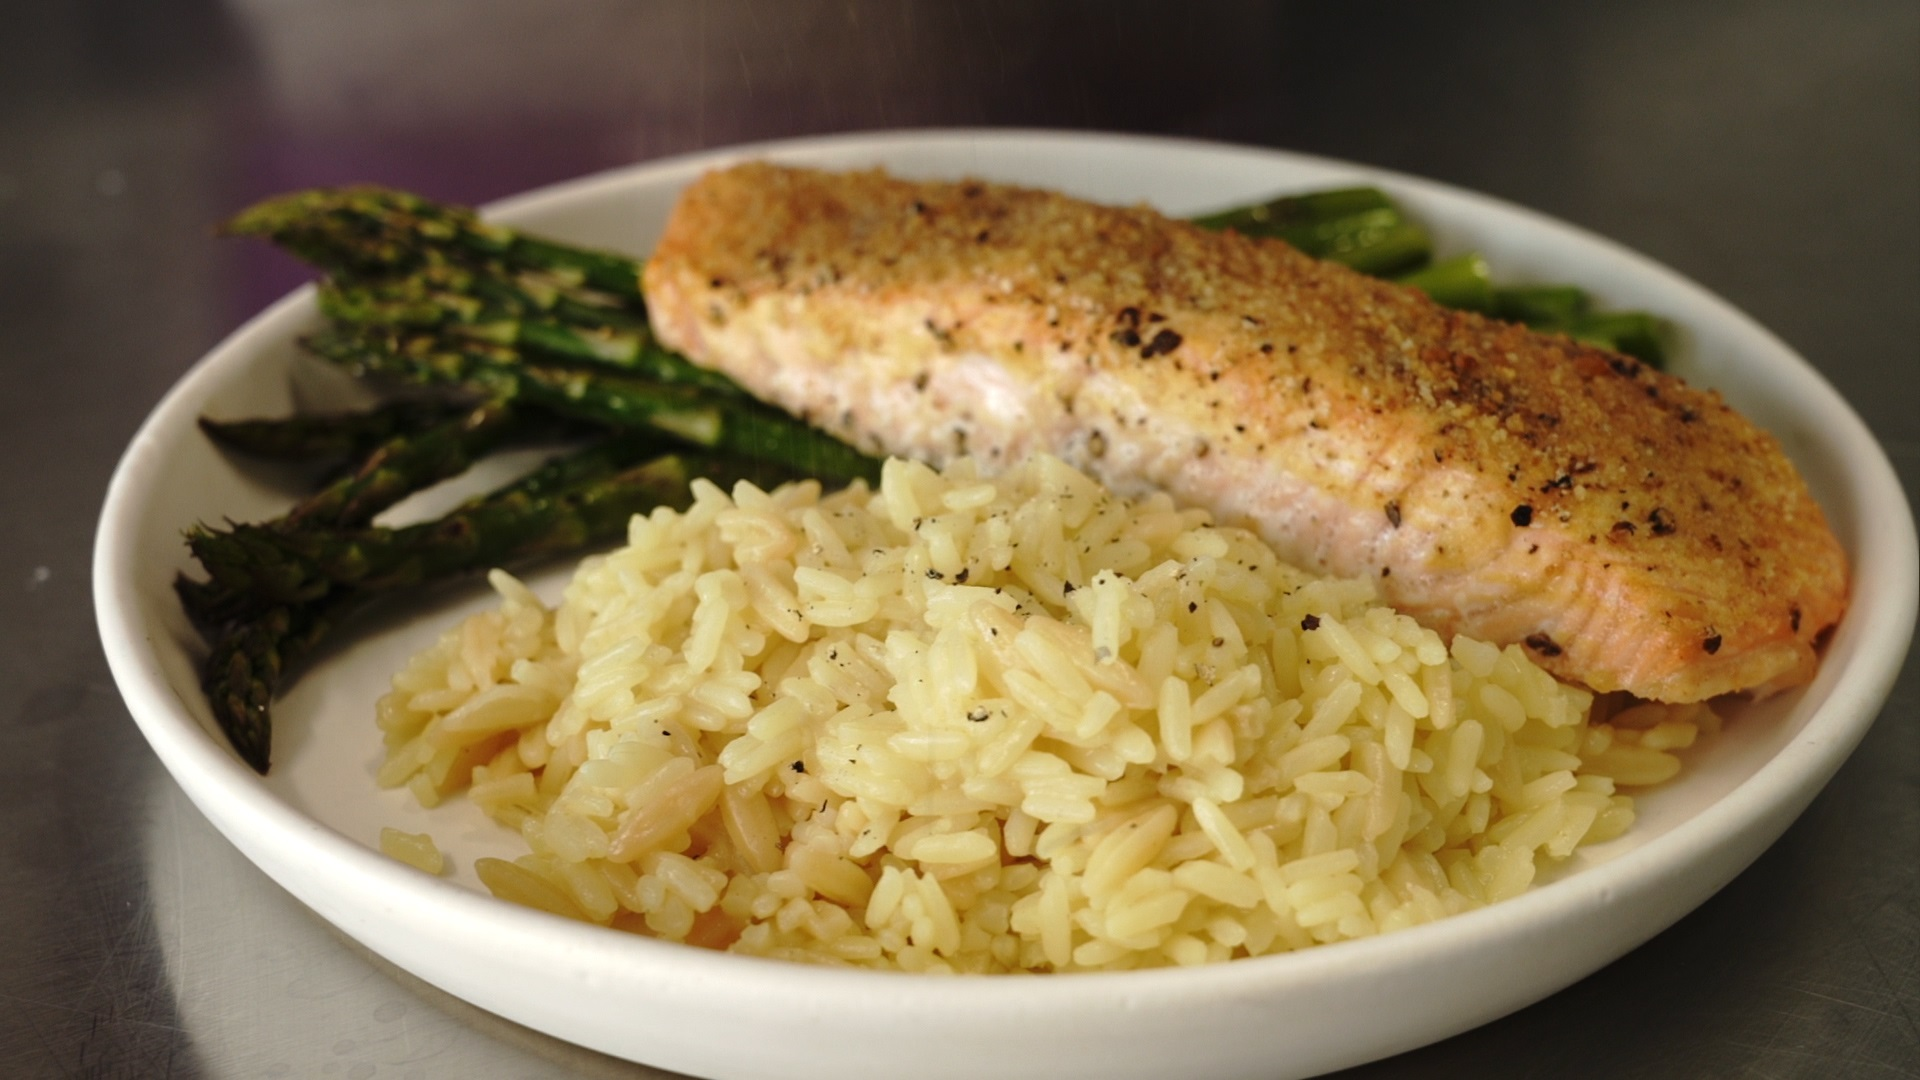 baked salmon fillets dijon with rice and asparagus